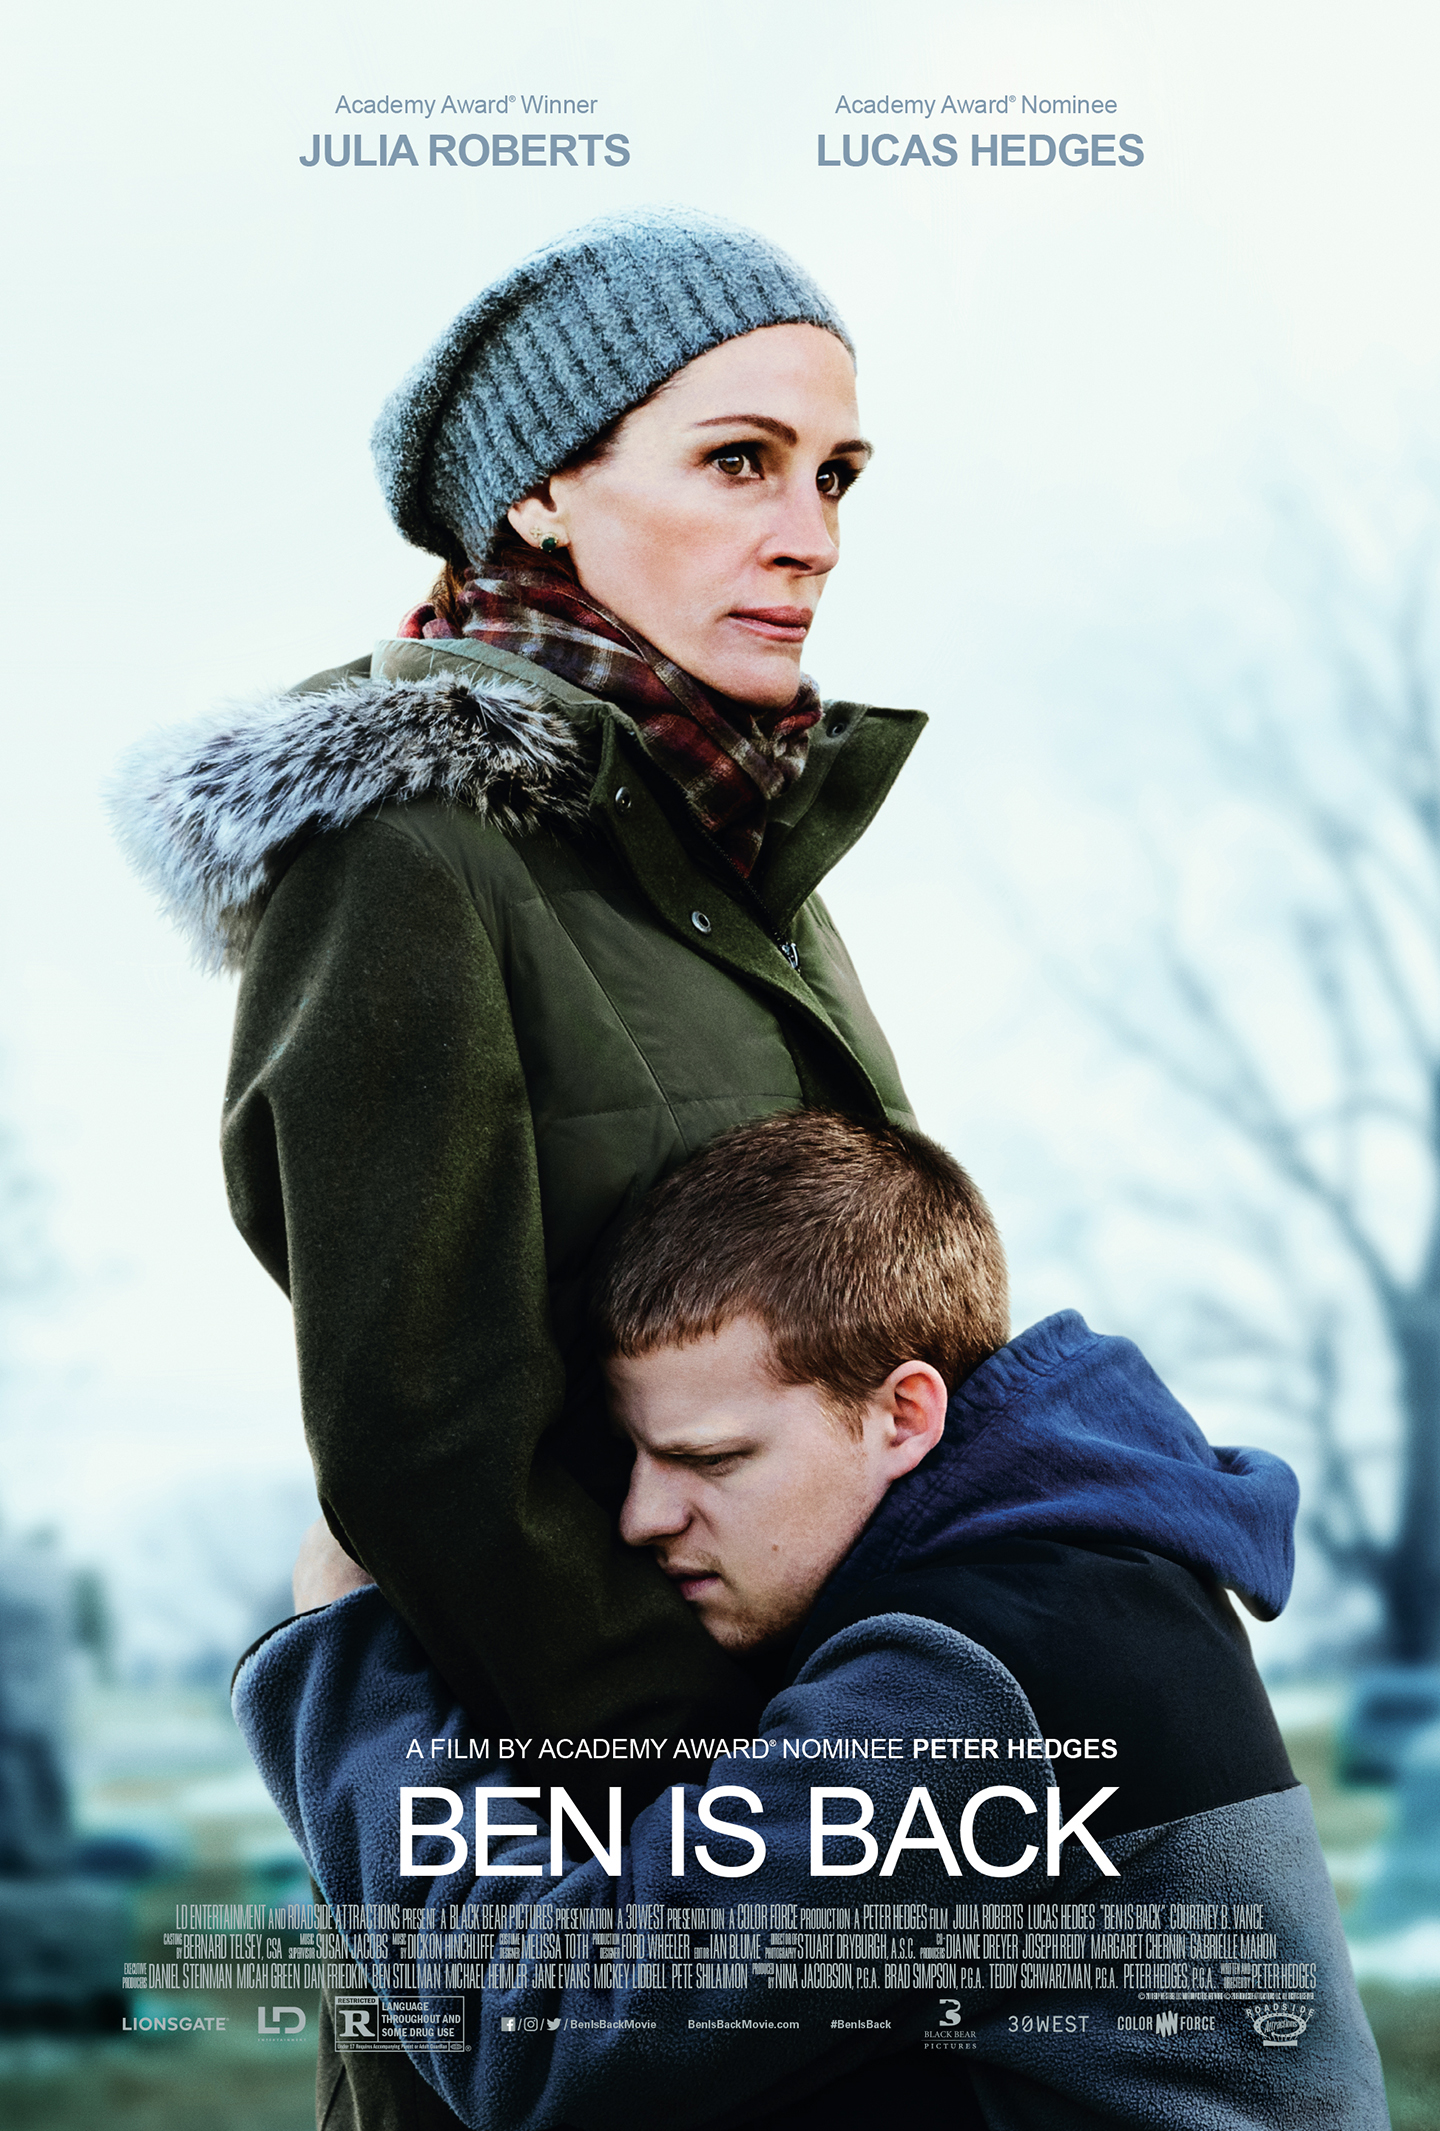 Ben is Back (2018) - Directed by: Peter HedgesStarring: Julia Roberts, Lucas Hedges, Kathryn Newton, Courtney B. VanceRated: R for Language Throughout and Some Drug UseRunning Time: 1h 44mTMM Score: 3.5 StarsSTRENGTHS: Performances, MessageWEAKNESSES: Too Safe